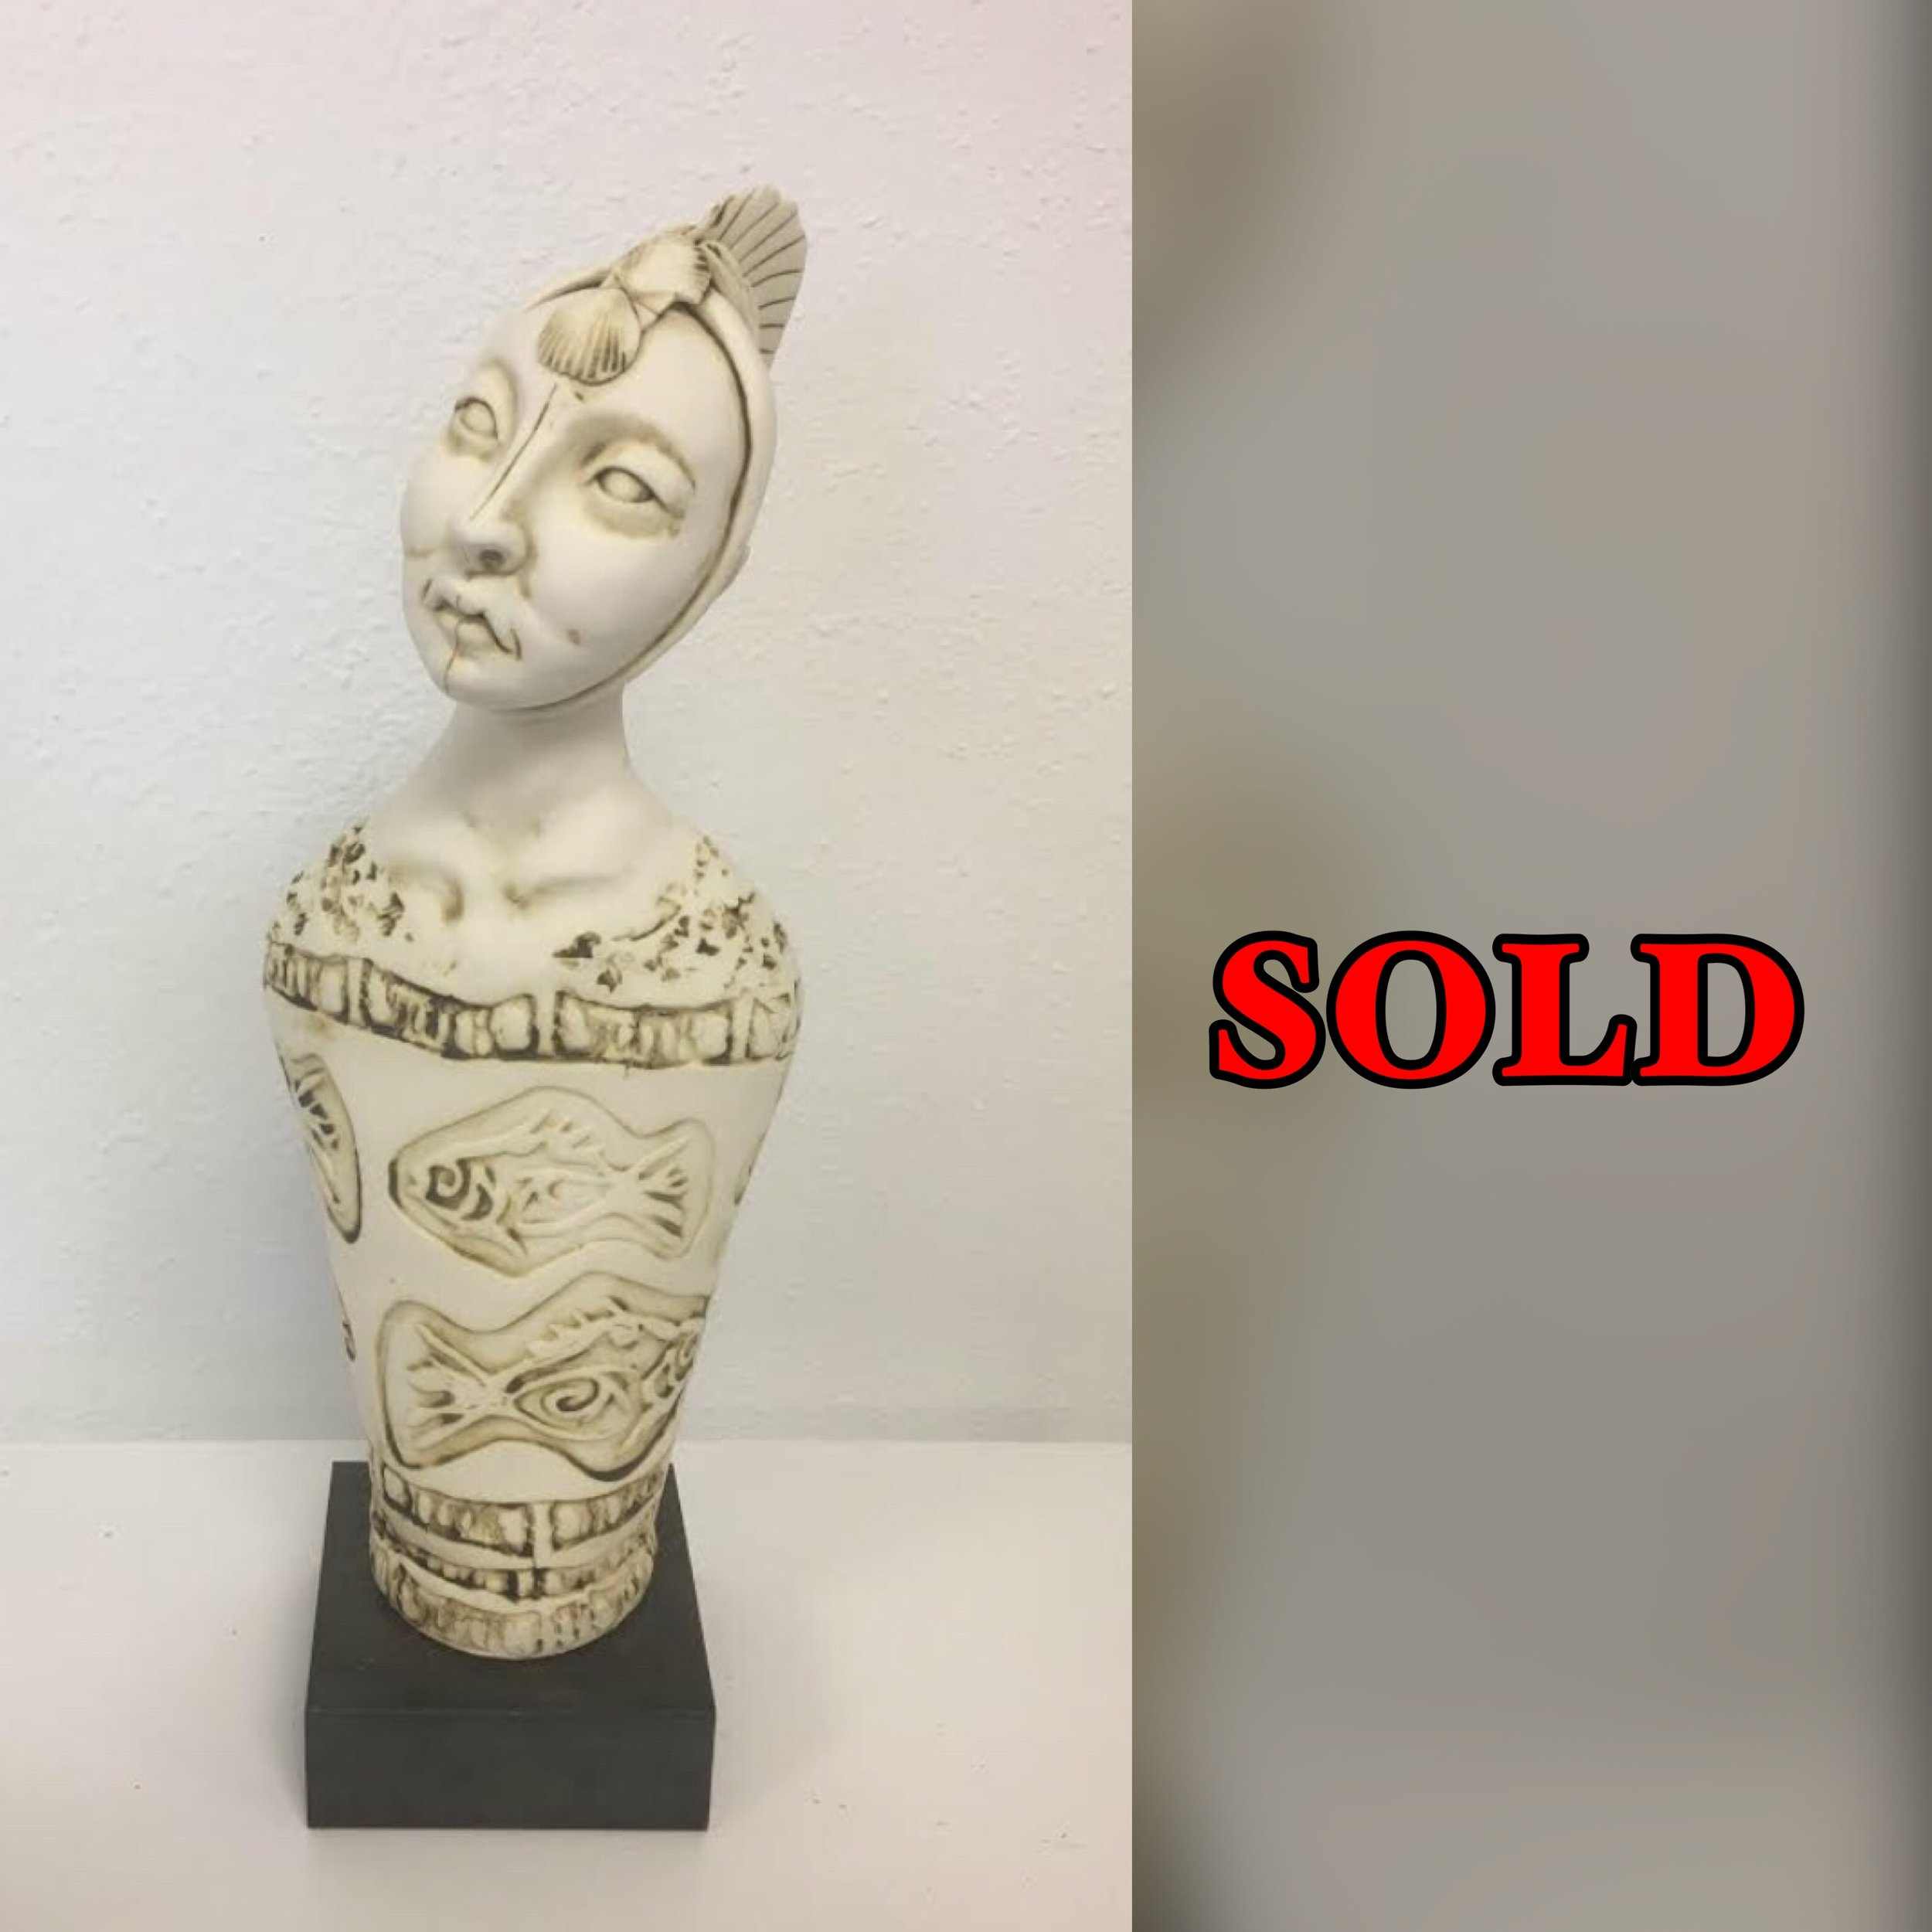 Fin Muse Sold.jpg